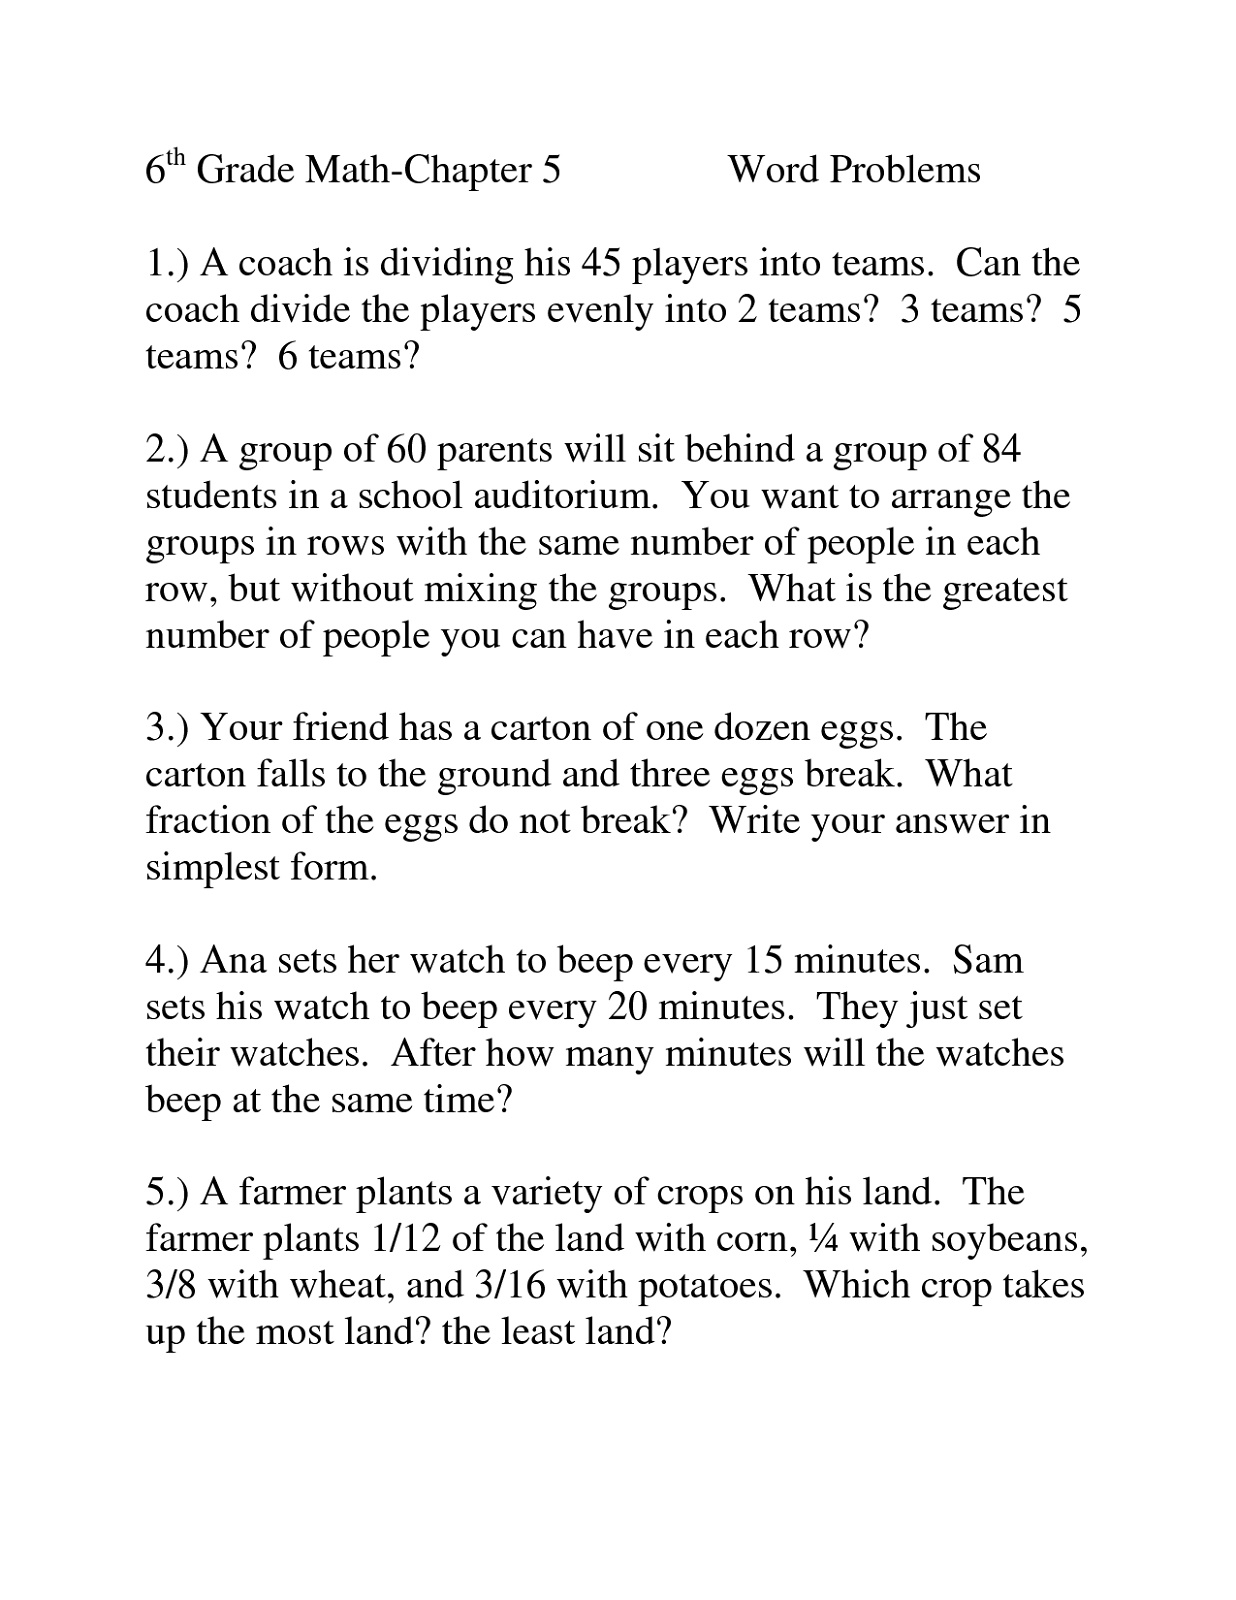 Word Problems Worksheets 6th Grade